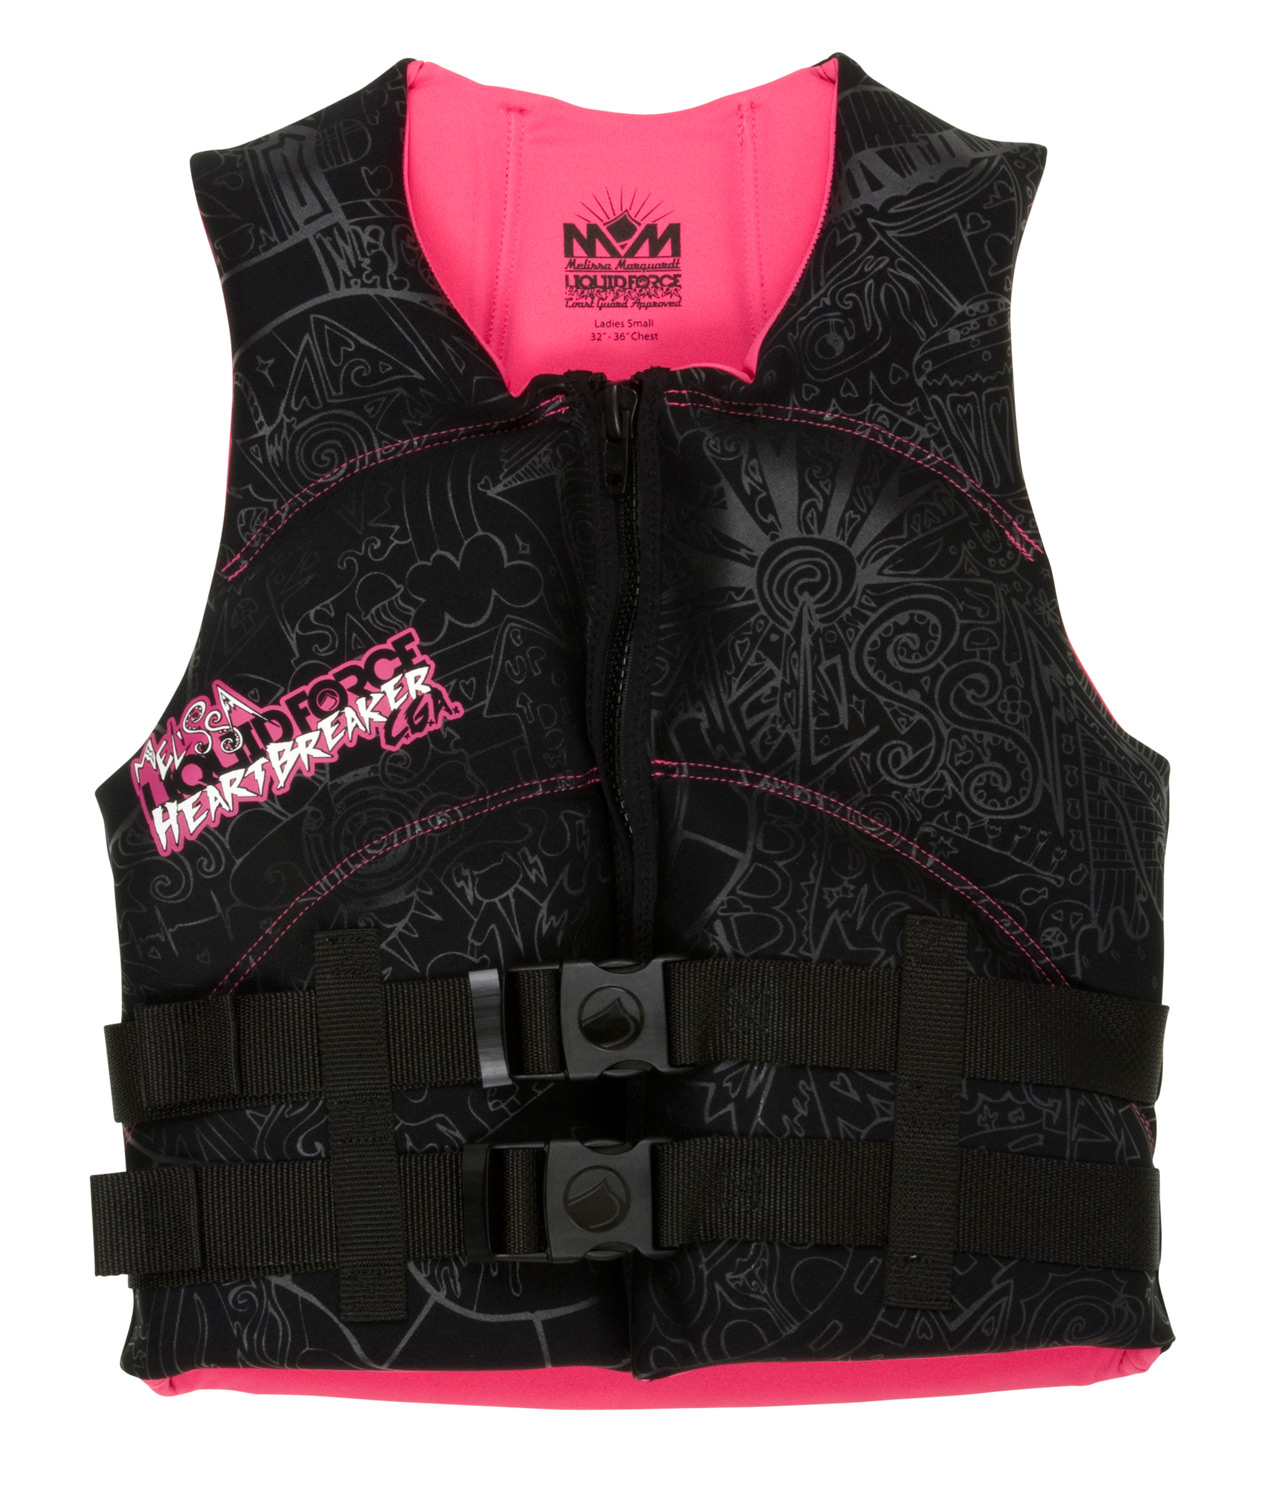 Wake The Heartbreaker is Melissa Marquardt's signature CGA Vest. It's what she wears when she's not competing. It features slimmed-down, quilted foam padding and allows her or any female ripper to move more freely. The vest is cut higher to provide optimum comfort and range of movement for women. The stealthy hidden straps provide the freedom to pass the handle without anything getting in your way.Key Features of the Liquid Force Heartbreaker CGA Wakeboard Vest: US Coast Guard Approved: Maximum flotation and safety Women's Cut: Shorter cut to fit just right Segmented PVC Front Panels: Ergonomic flex patterns keep the Vest: Extra space and comfort for added mobility Heavy Duty Zipper: Secure, solid hold Hidden Straps: Clean support with nothing to get in the way - $63.95